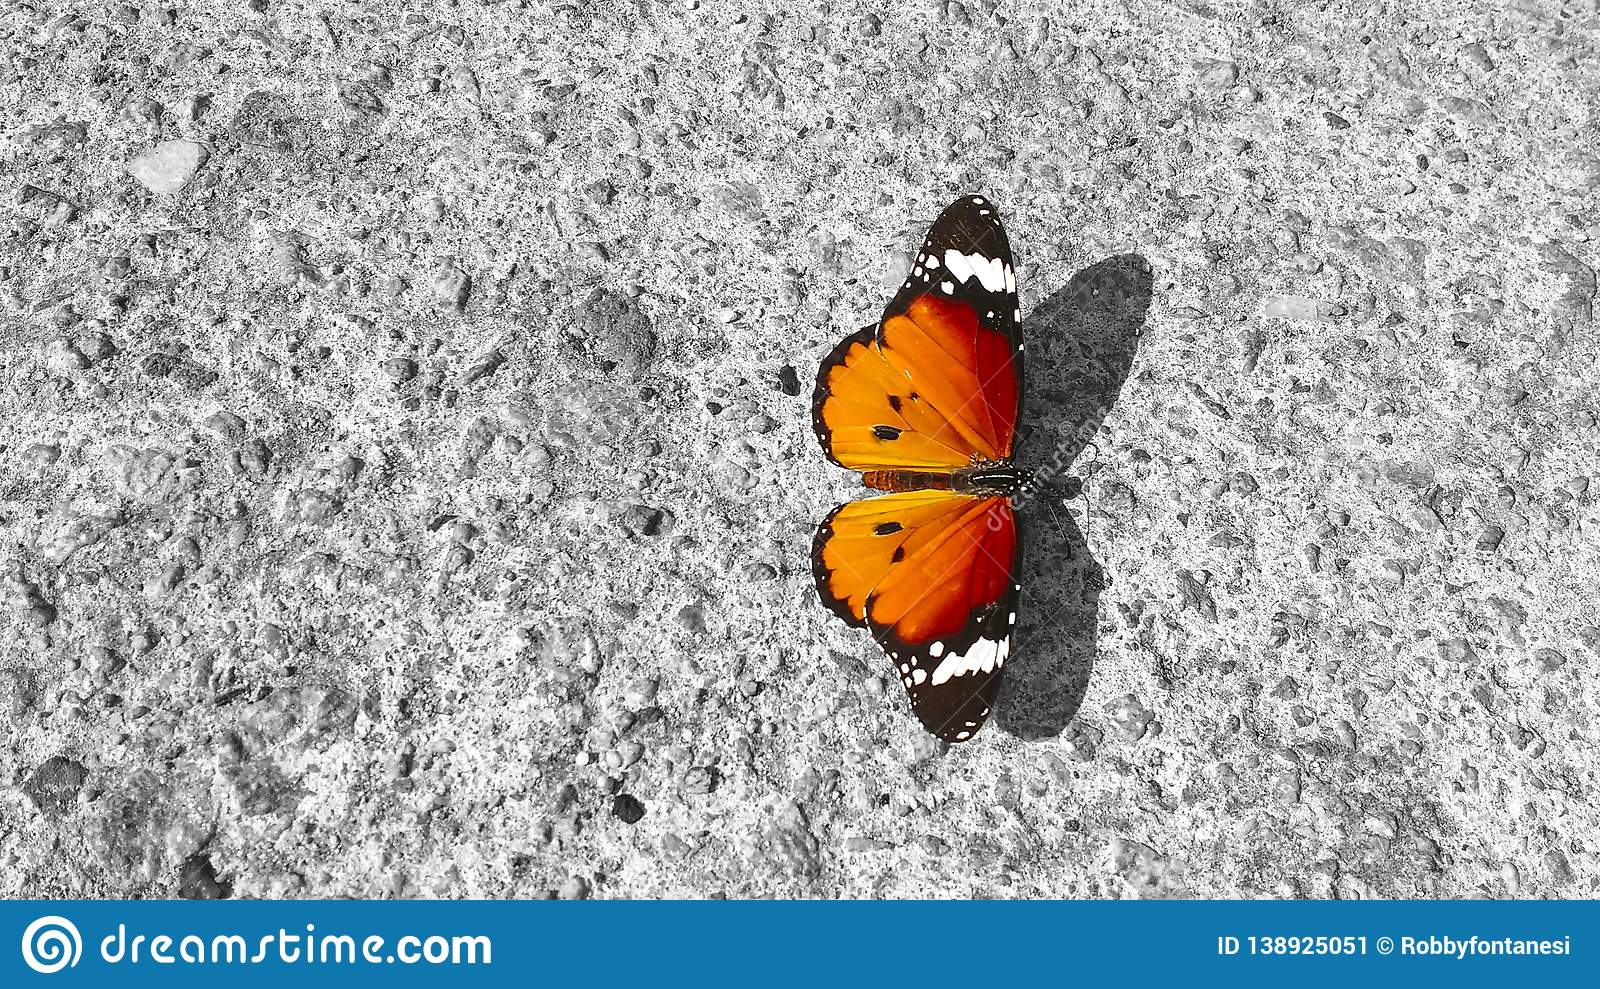 A butterfly Danaus Chrysippus, Plain Tiger, resting on a concrete wall: its beauty and elegance in contrast to the roughness of